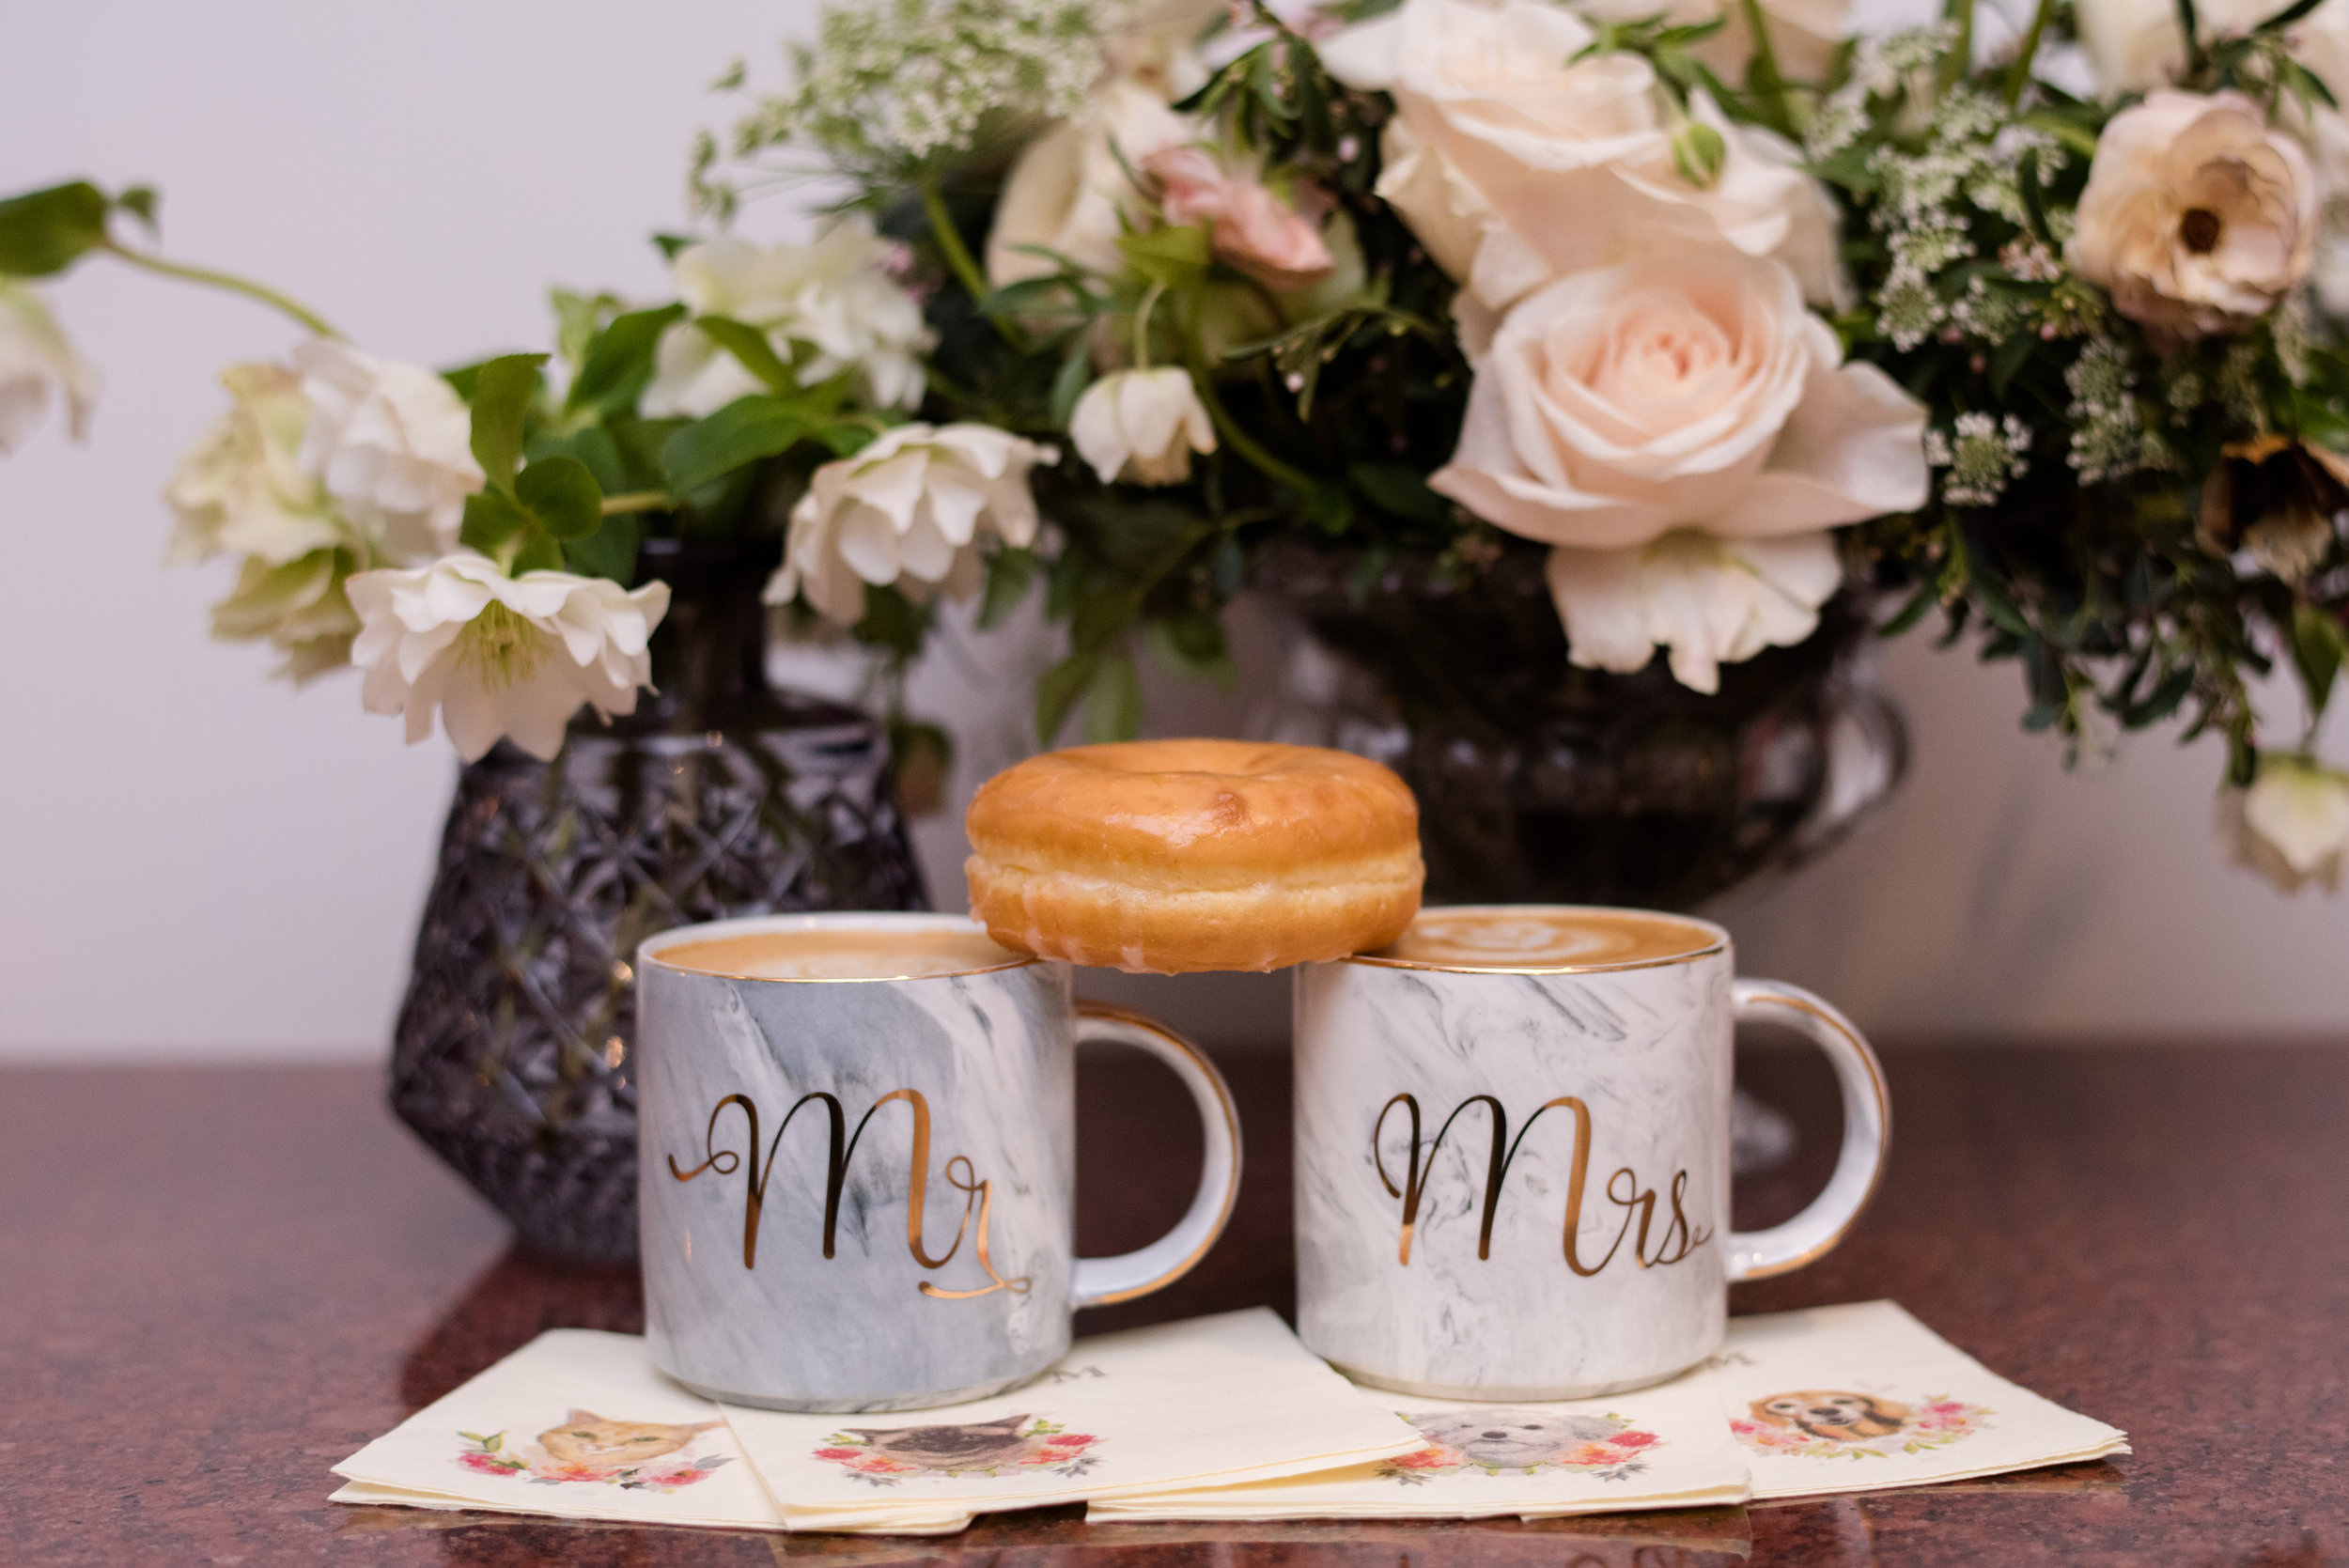 angelica rose events las vegas wedding planner donuts and coffee.jpg